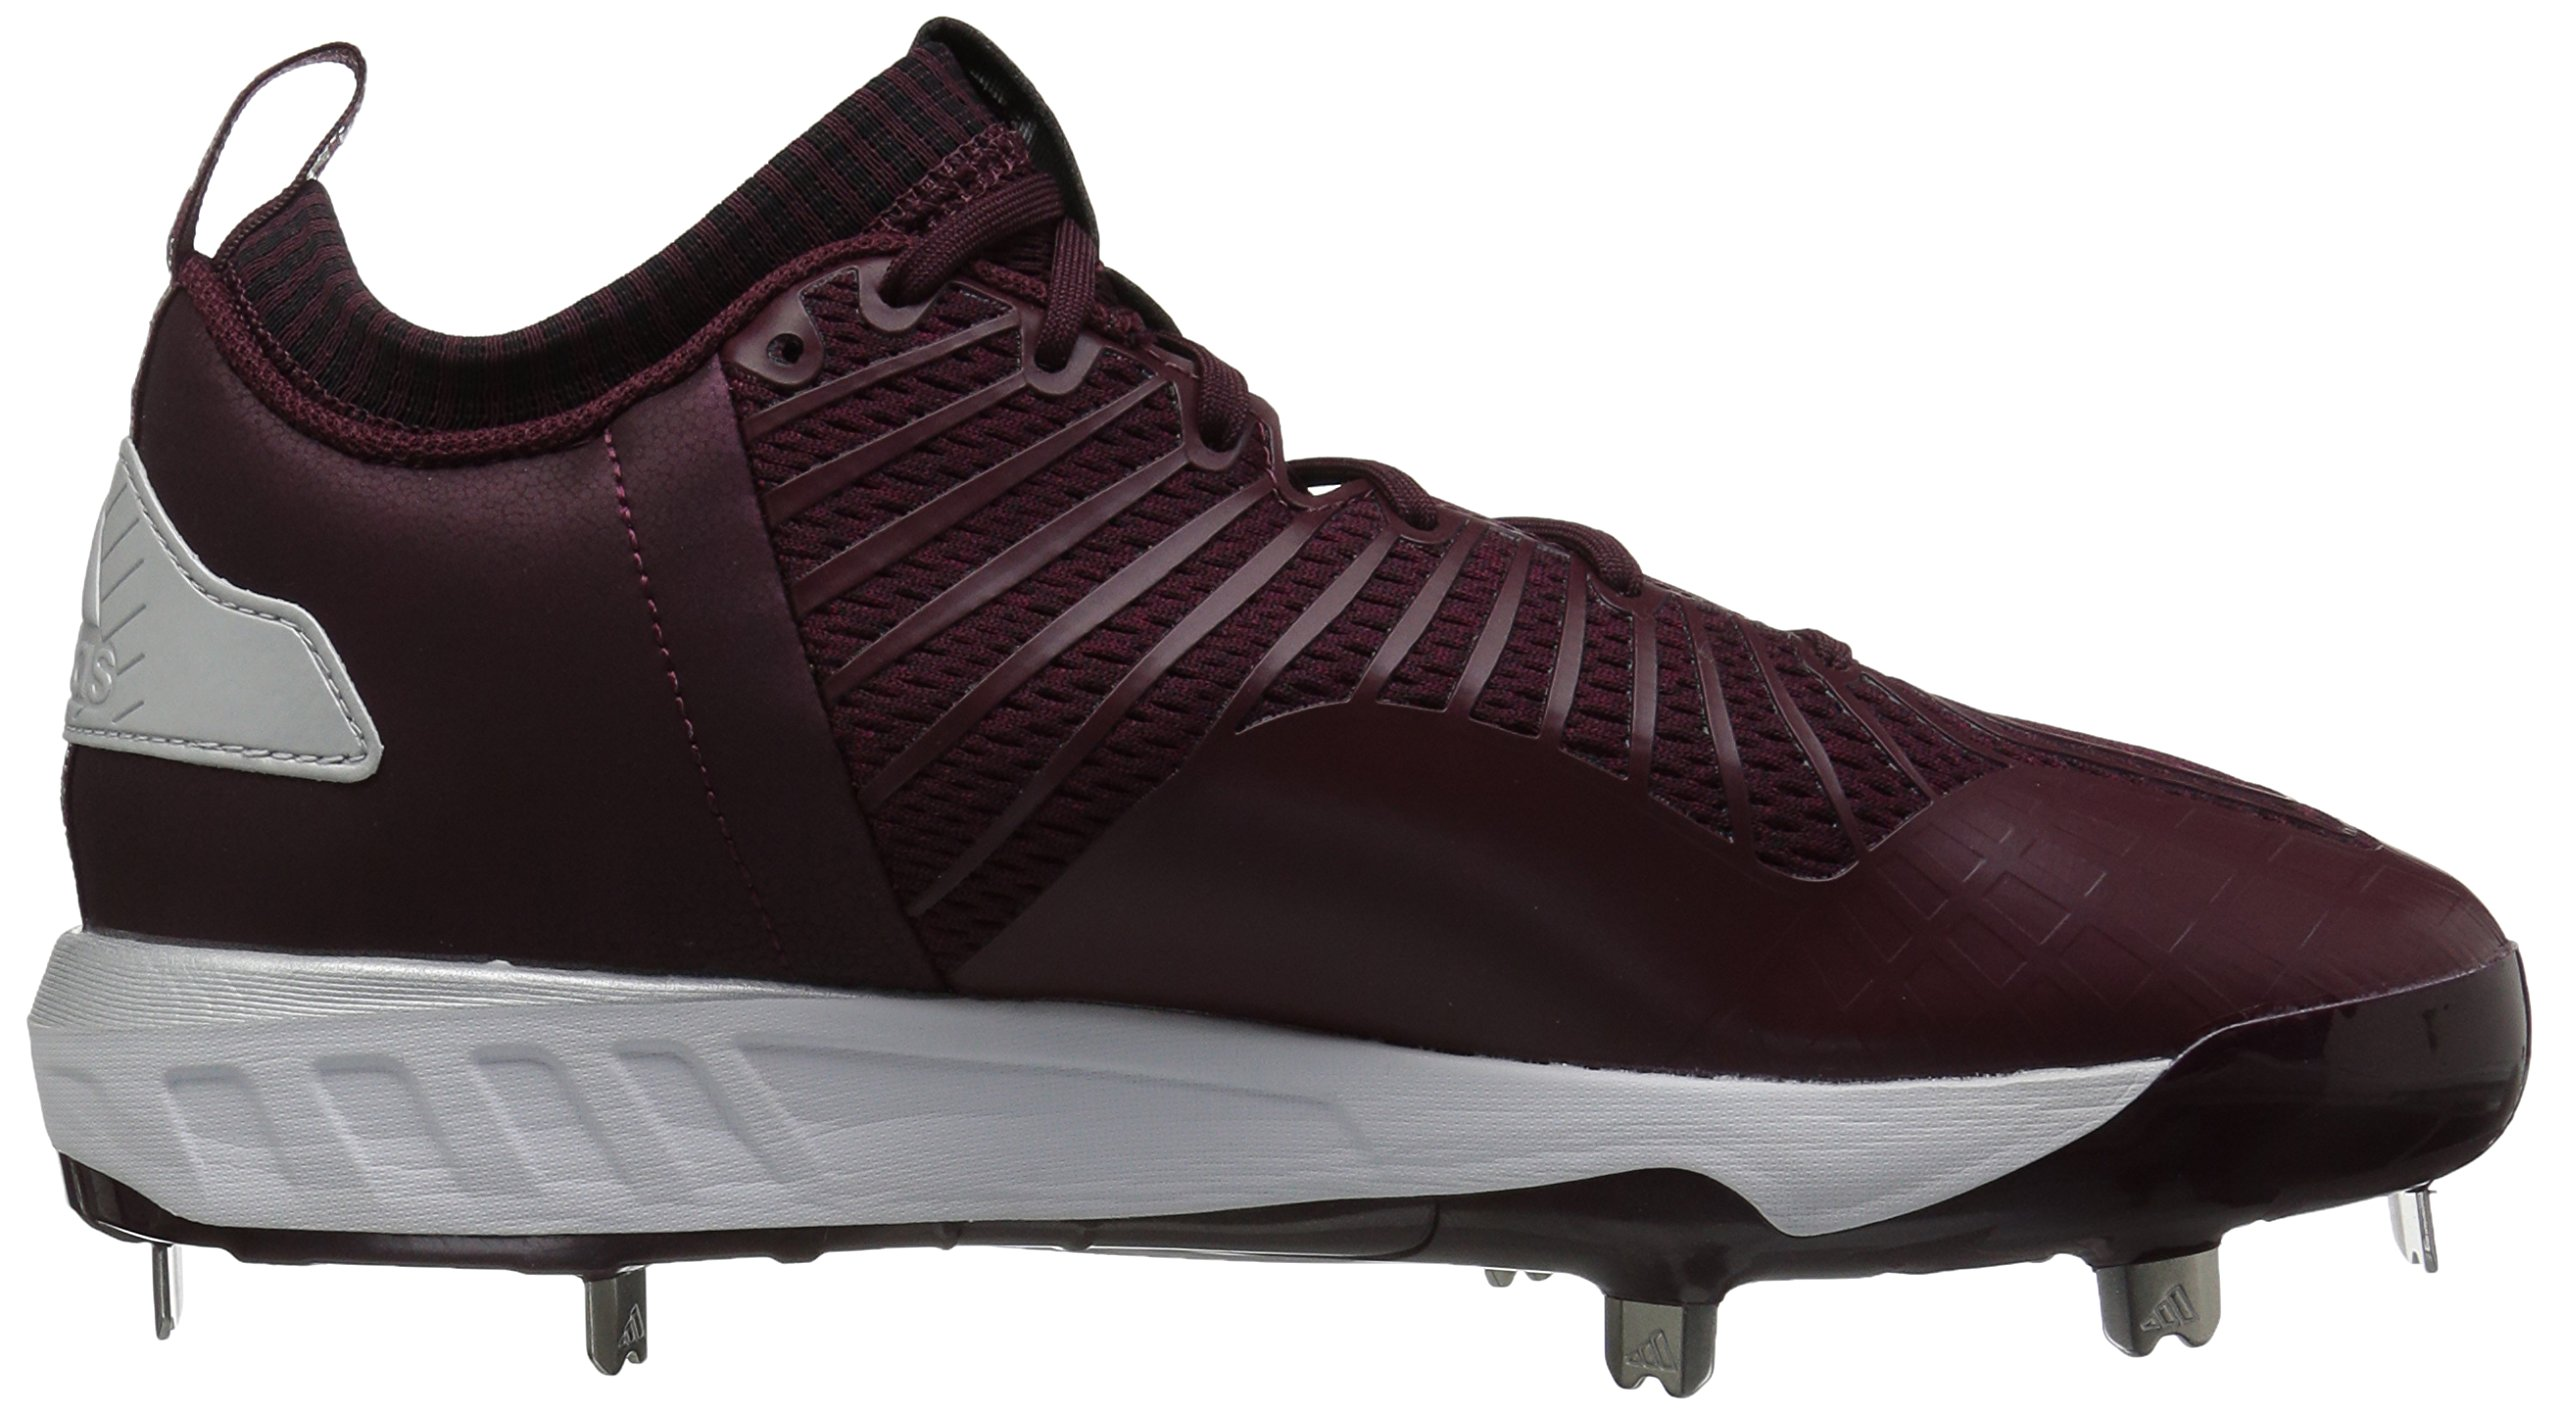 adidas Men's Freak X Carbon Mid Baseball Shoe, Maroon/White/Metallic Silver, 7.5 Medium US by adidas (Image #7)